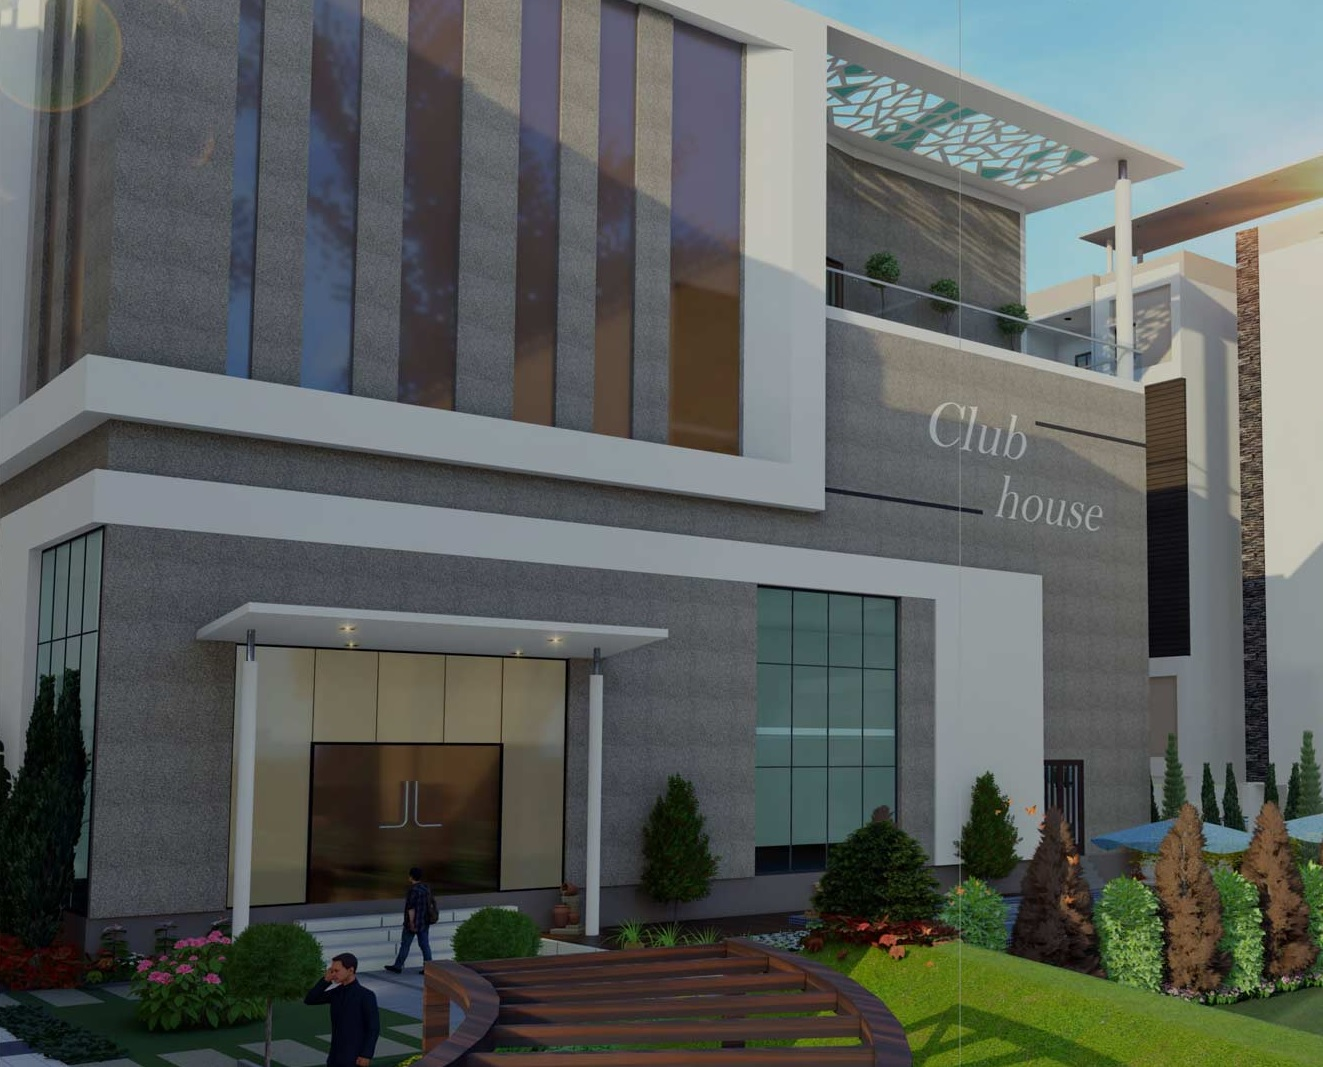 ar alpine square project amenities features1